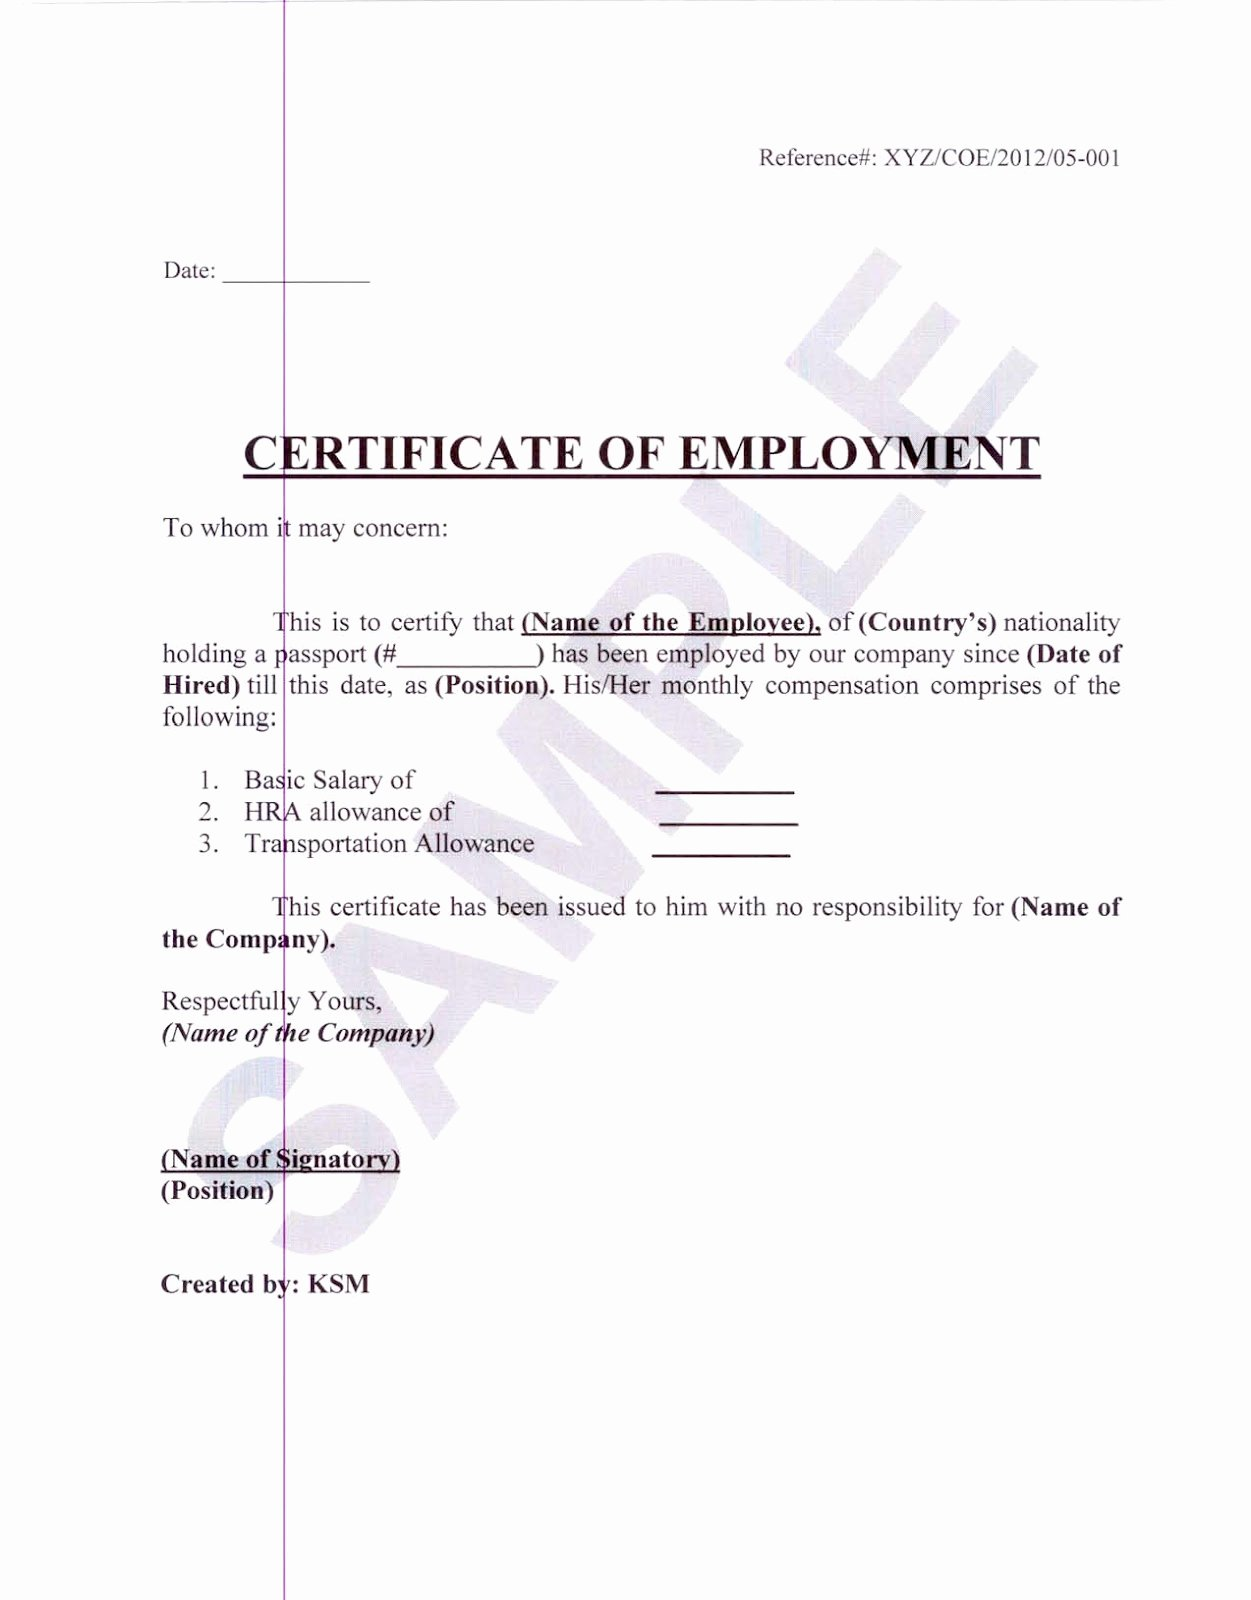 Certificate Of Employment Template Inspirational Money Business People Travel and Pleasure Certificate